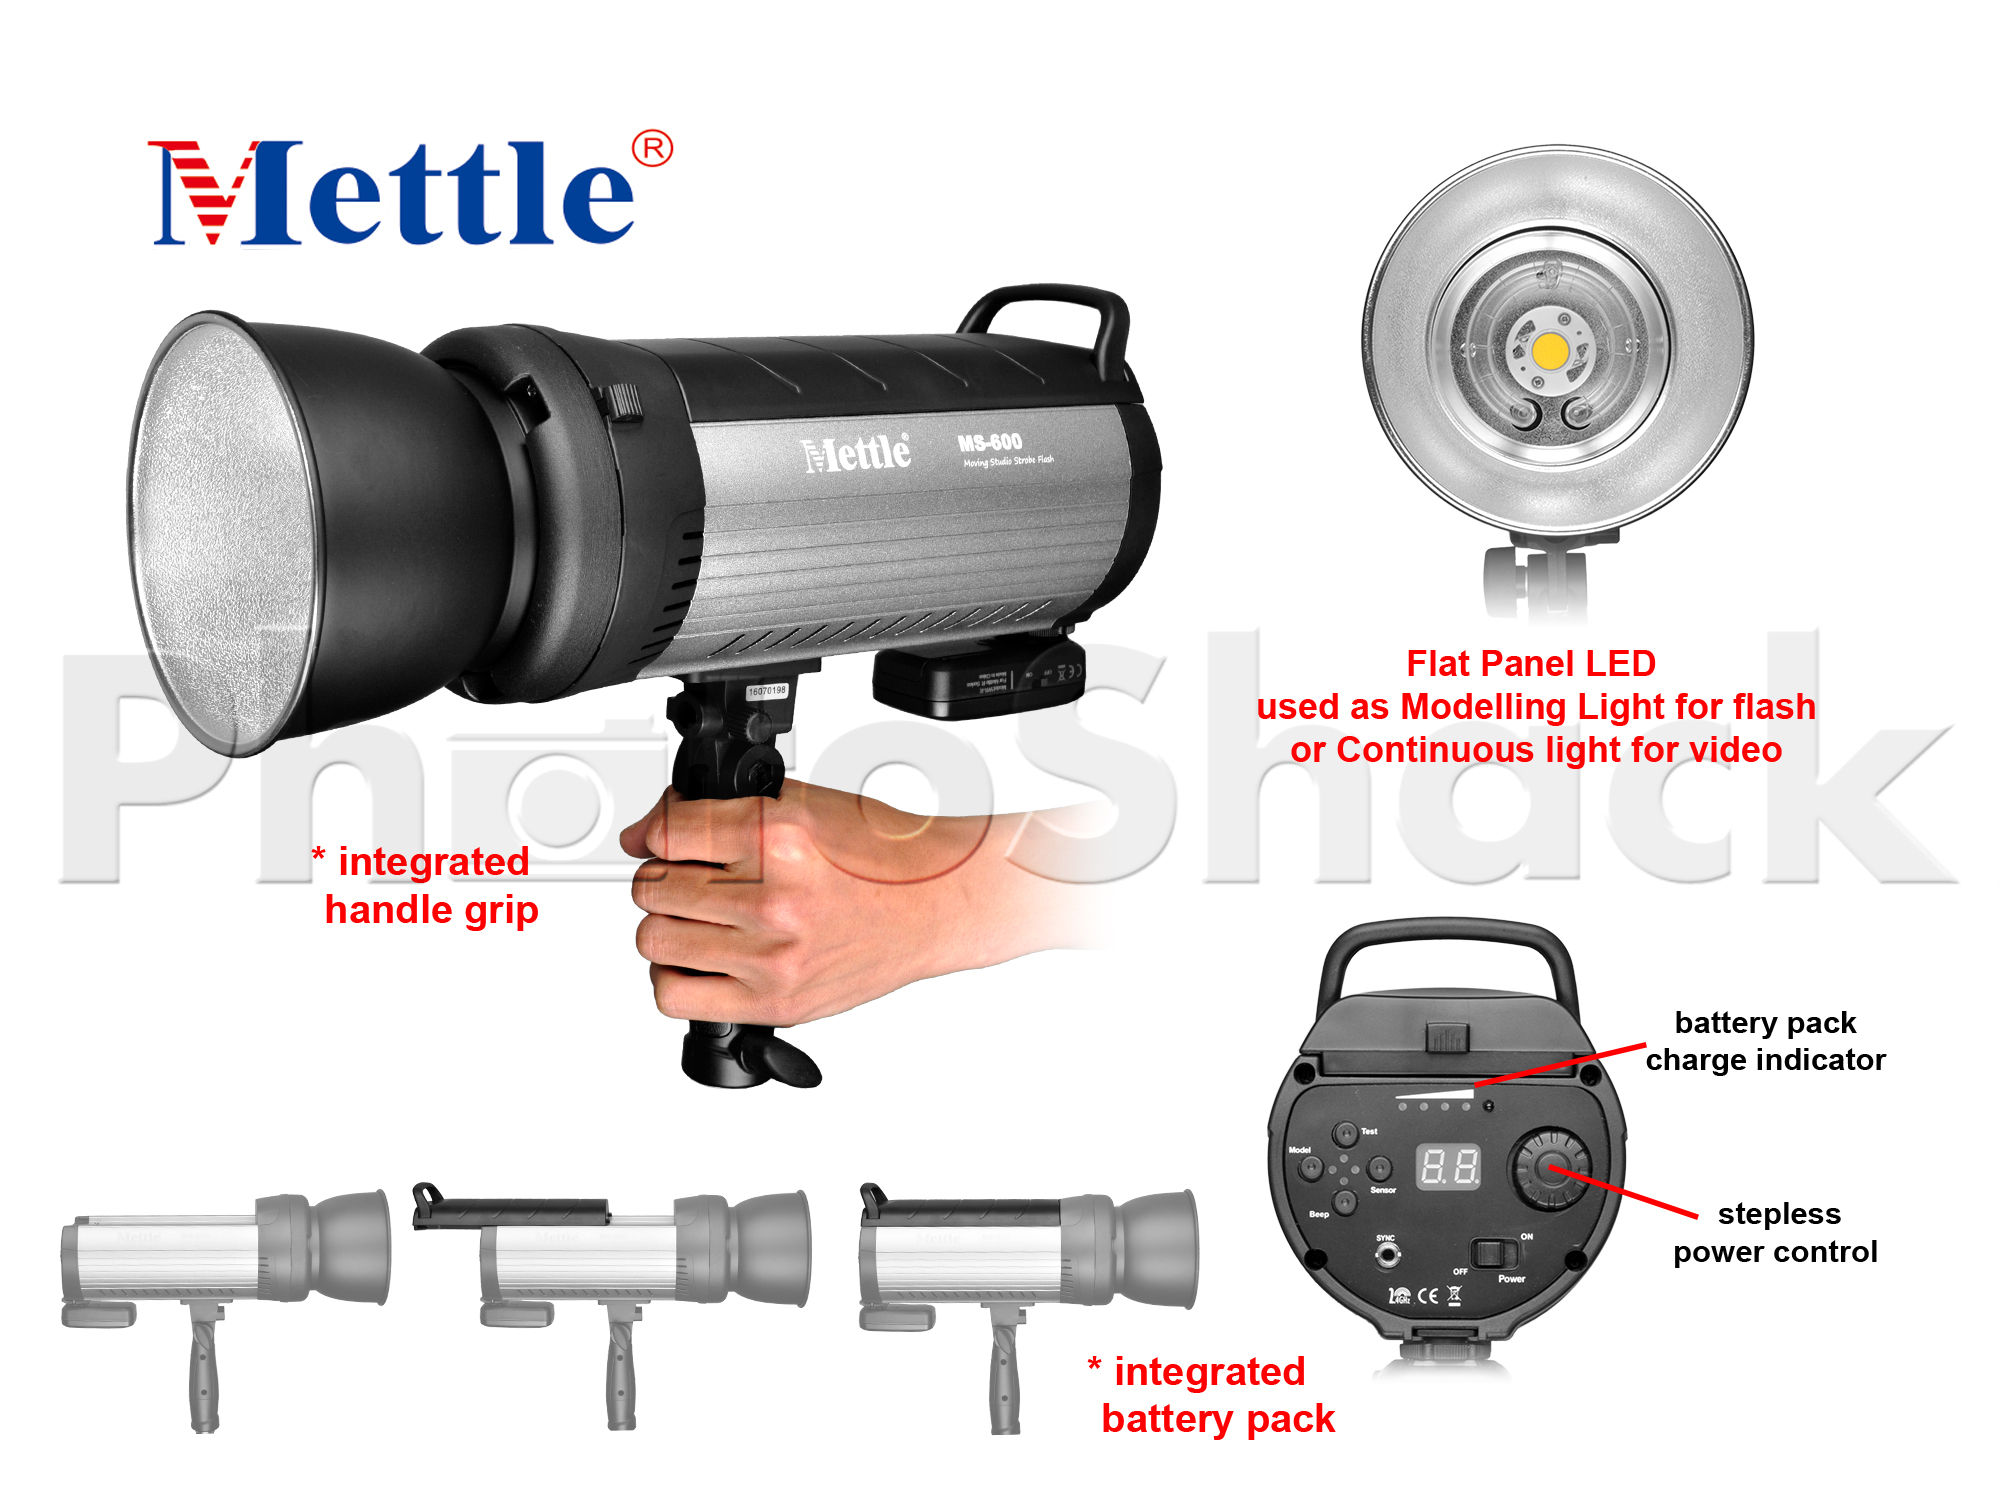 Studio Flash - 600W - Mettle MS600A